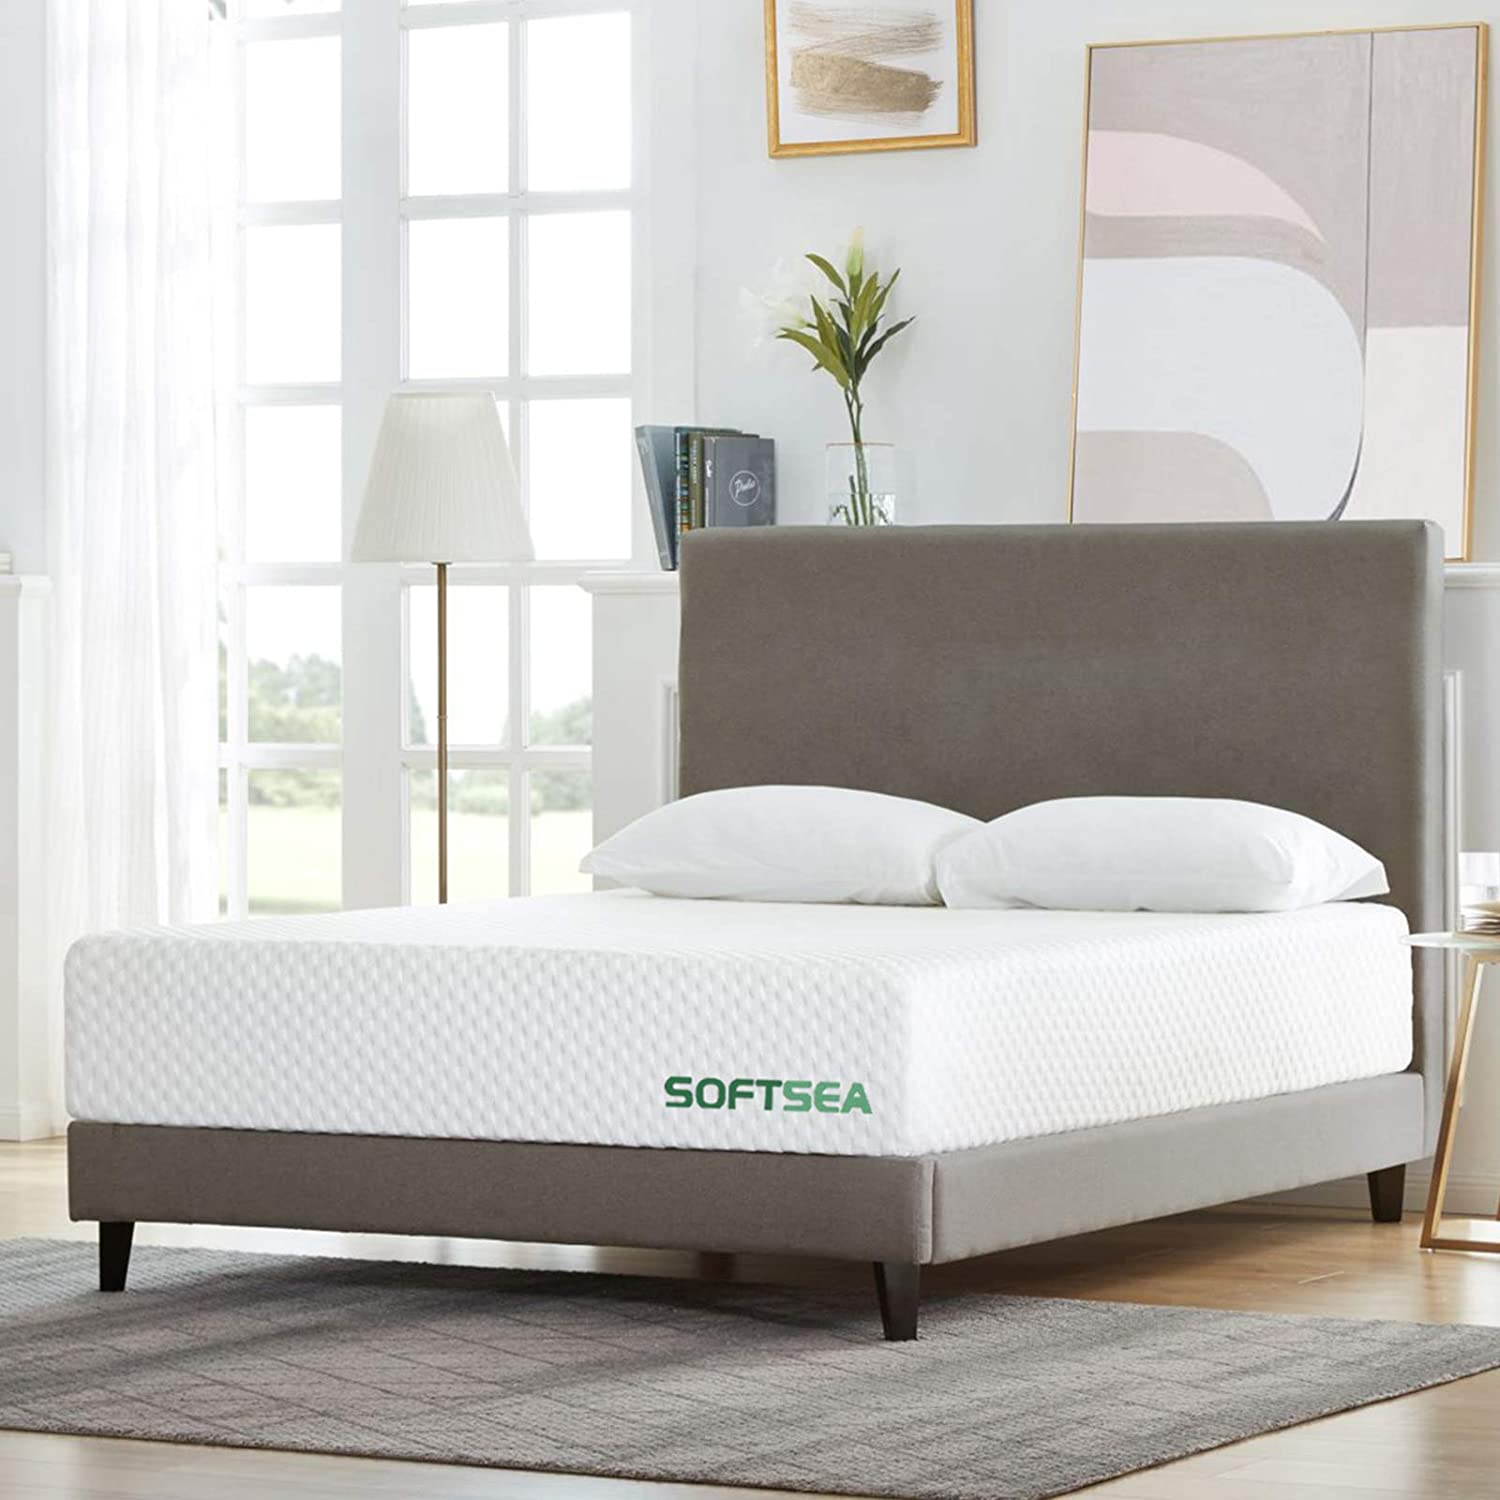 Full Size Mattress, SOFTSEA 12 inch Cooling-Gel Memory Foam Mattress in a Box for a Medium Comfort, Breathable Bed Mattress with CertiPUR-US Certified Foam, No Set-up, Easy Assembly, 10 Year Warranty